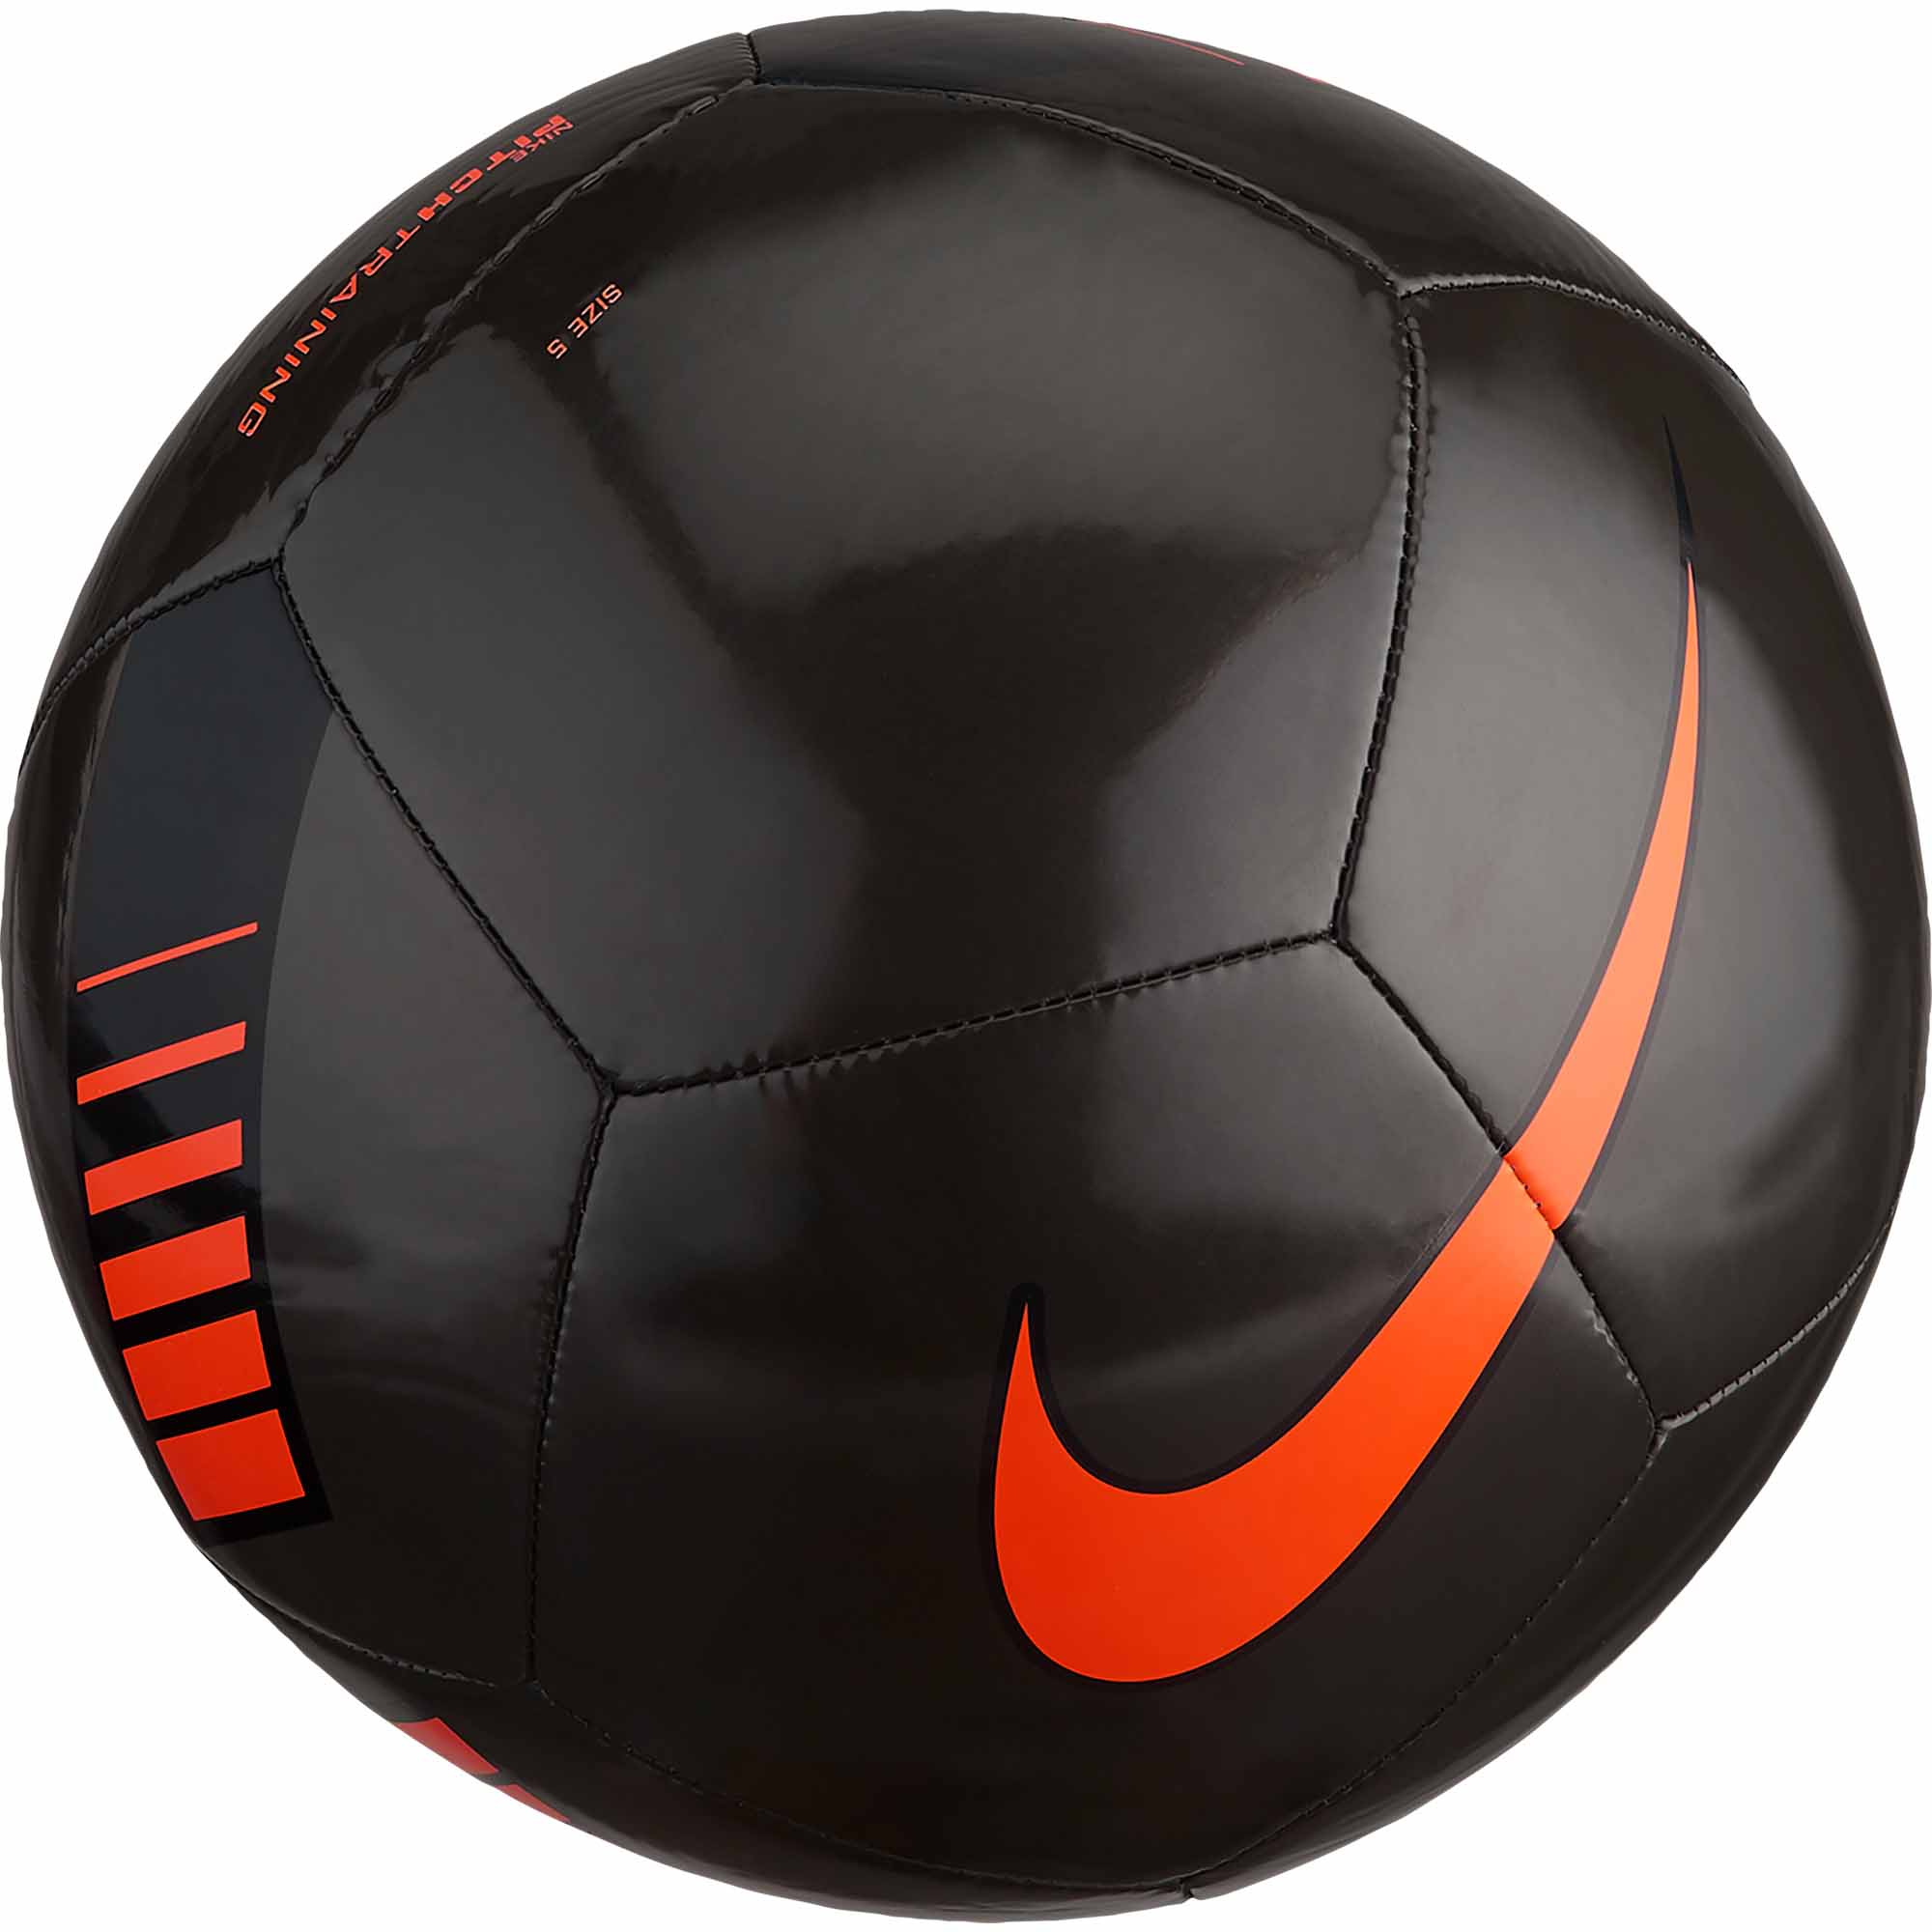 meet detailed images pretty cheap Nike Pitch Training Ball - Black Nike Soccer Balls